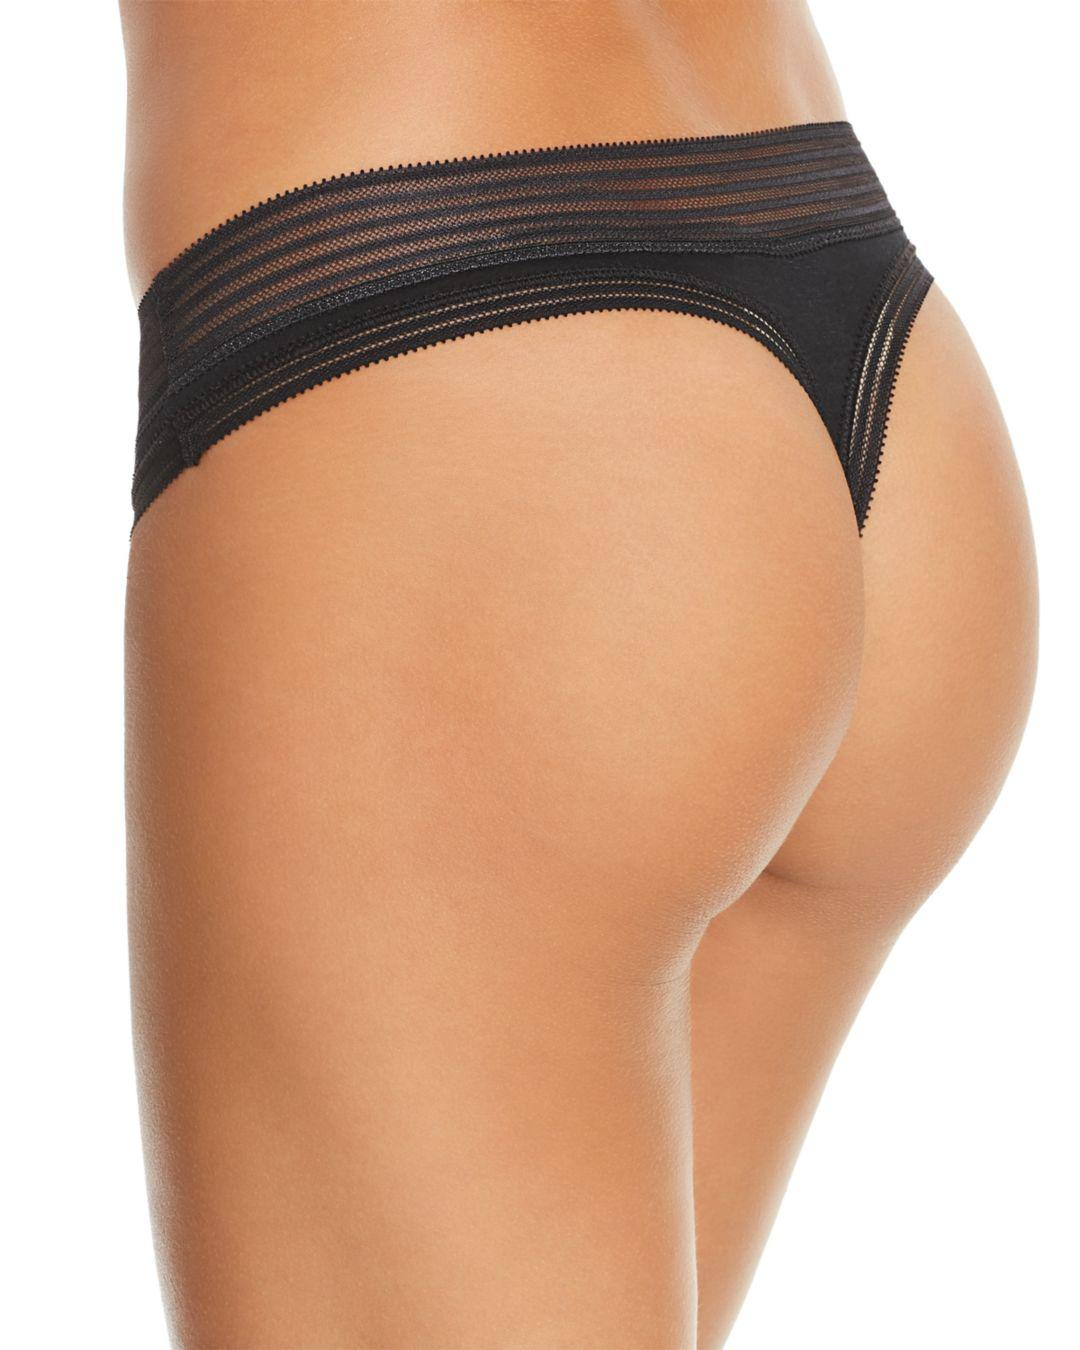 3959c6b7f62 Lyst - Calvin Klein Stretch Modal Thong in Black - Save 15%